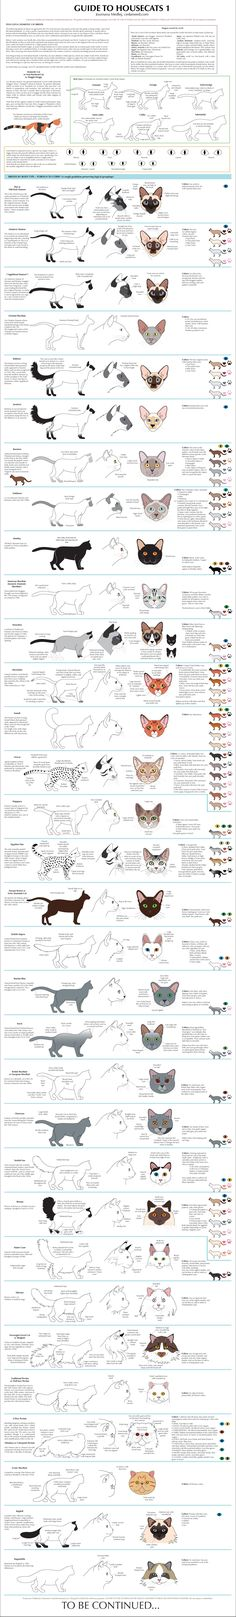 #HowTo - Guide to house #cat